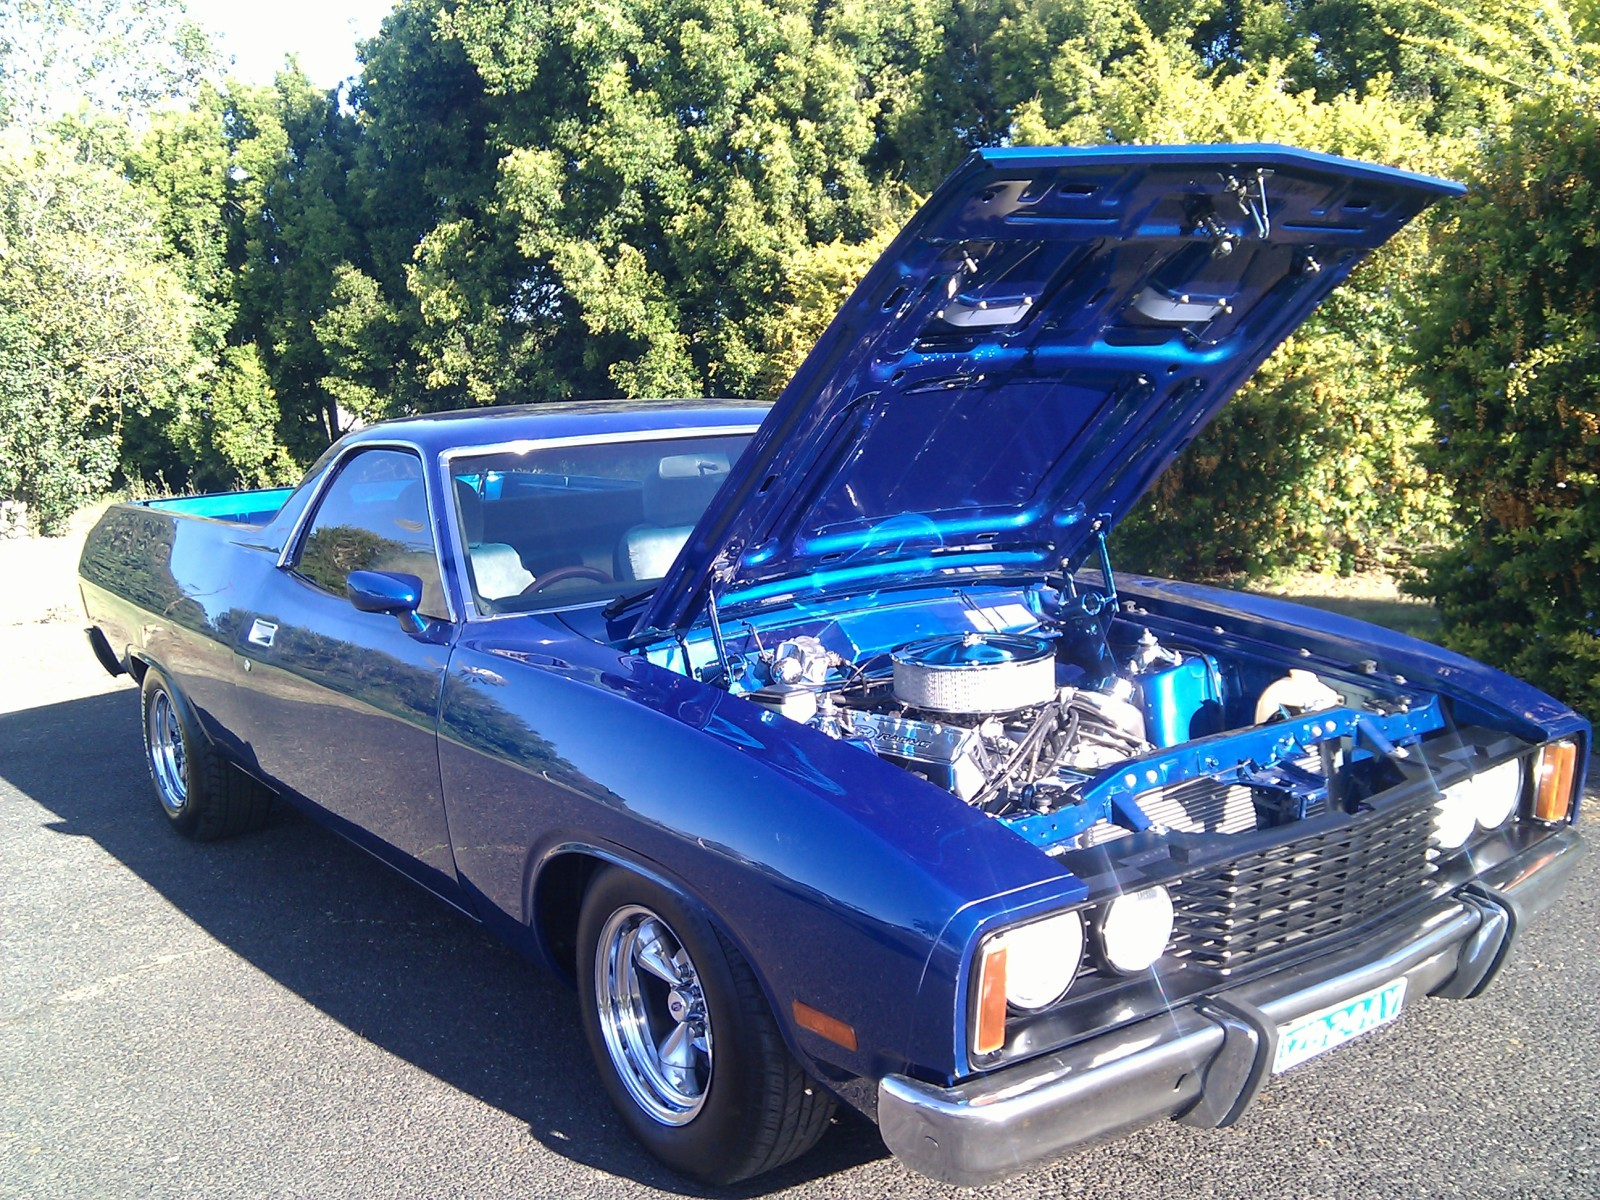 Selling a fully restored XC Ute muscle car